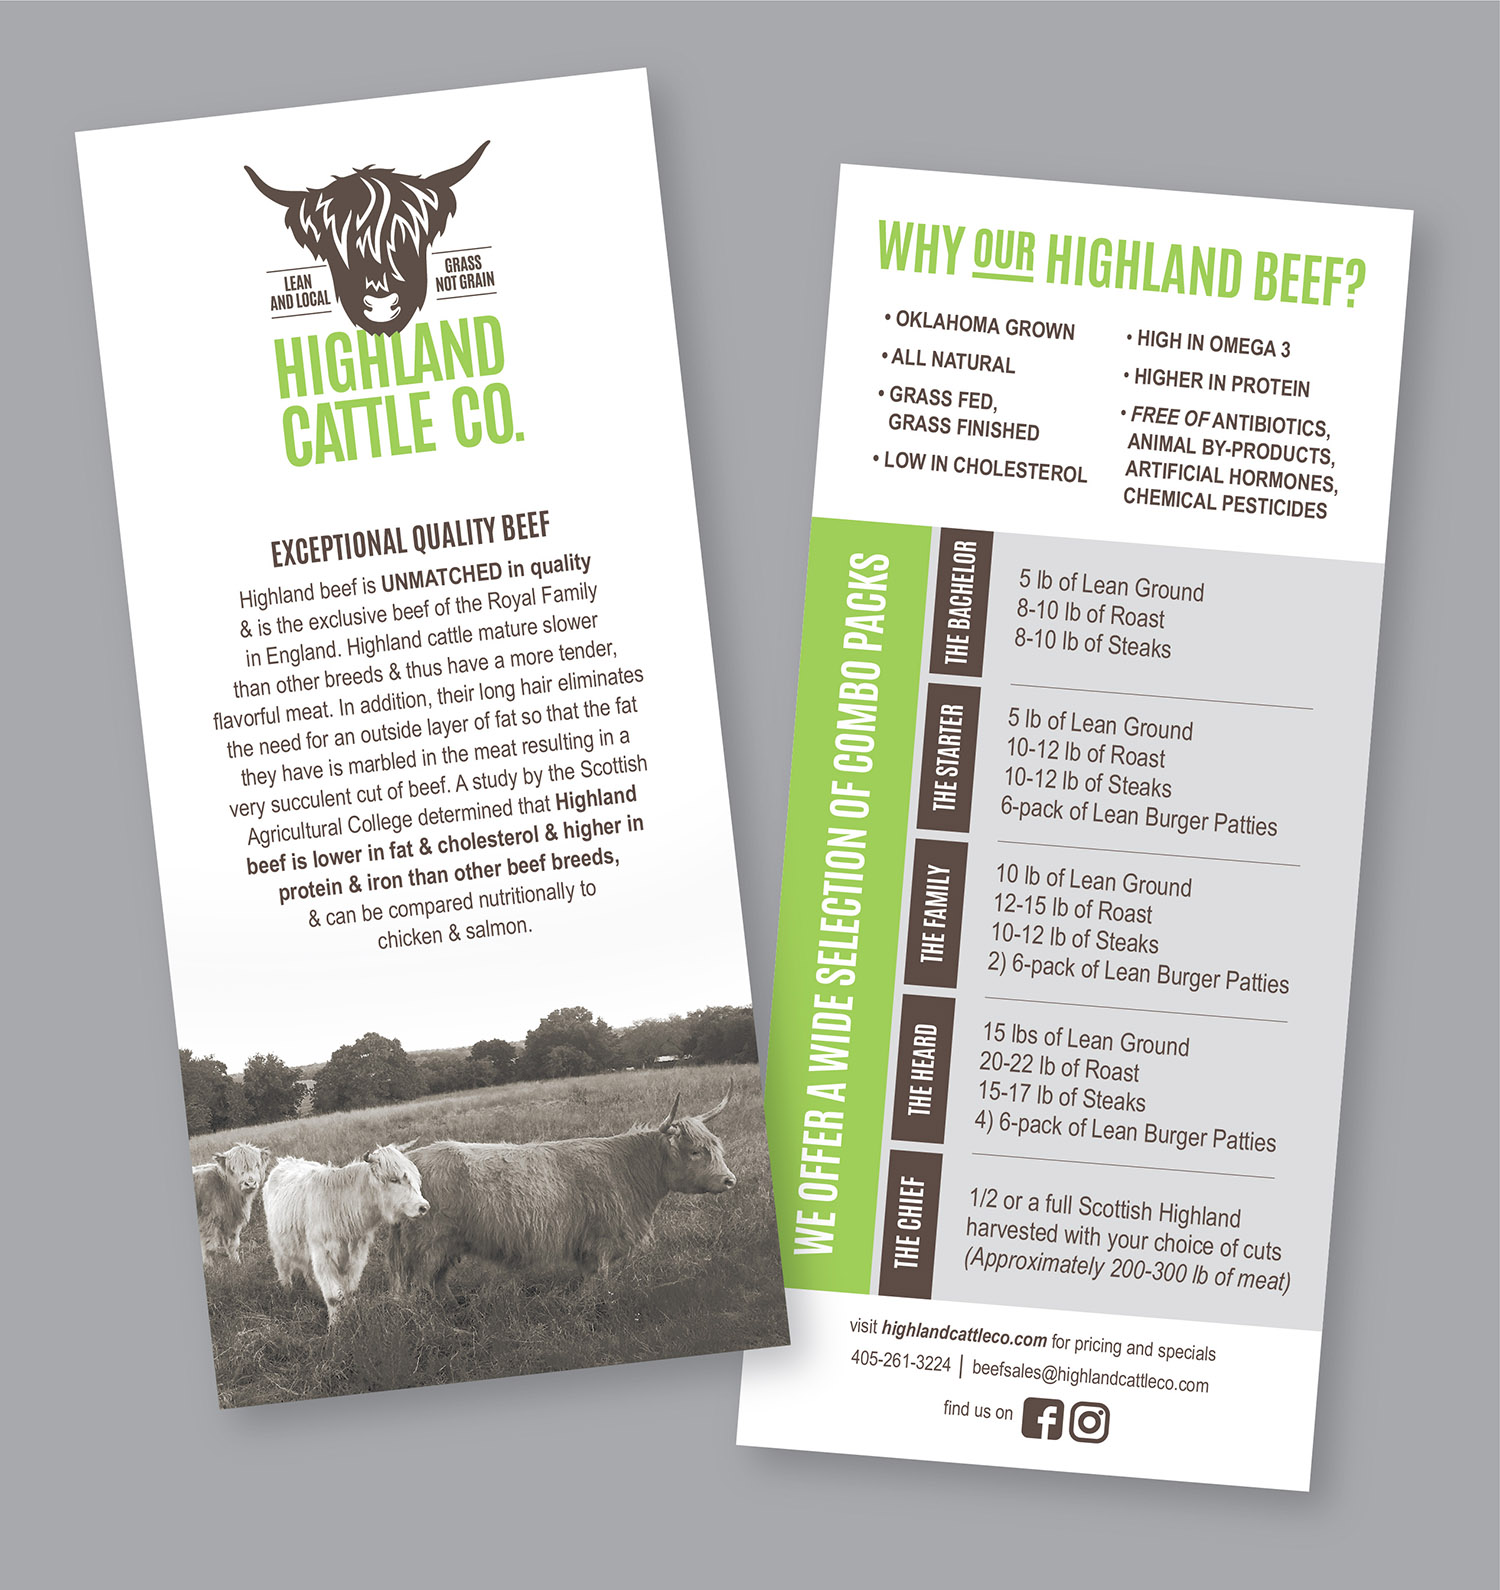 Promotional Flyer for Highland Cattle Co.